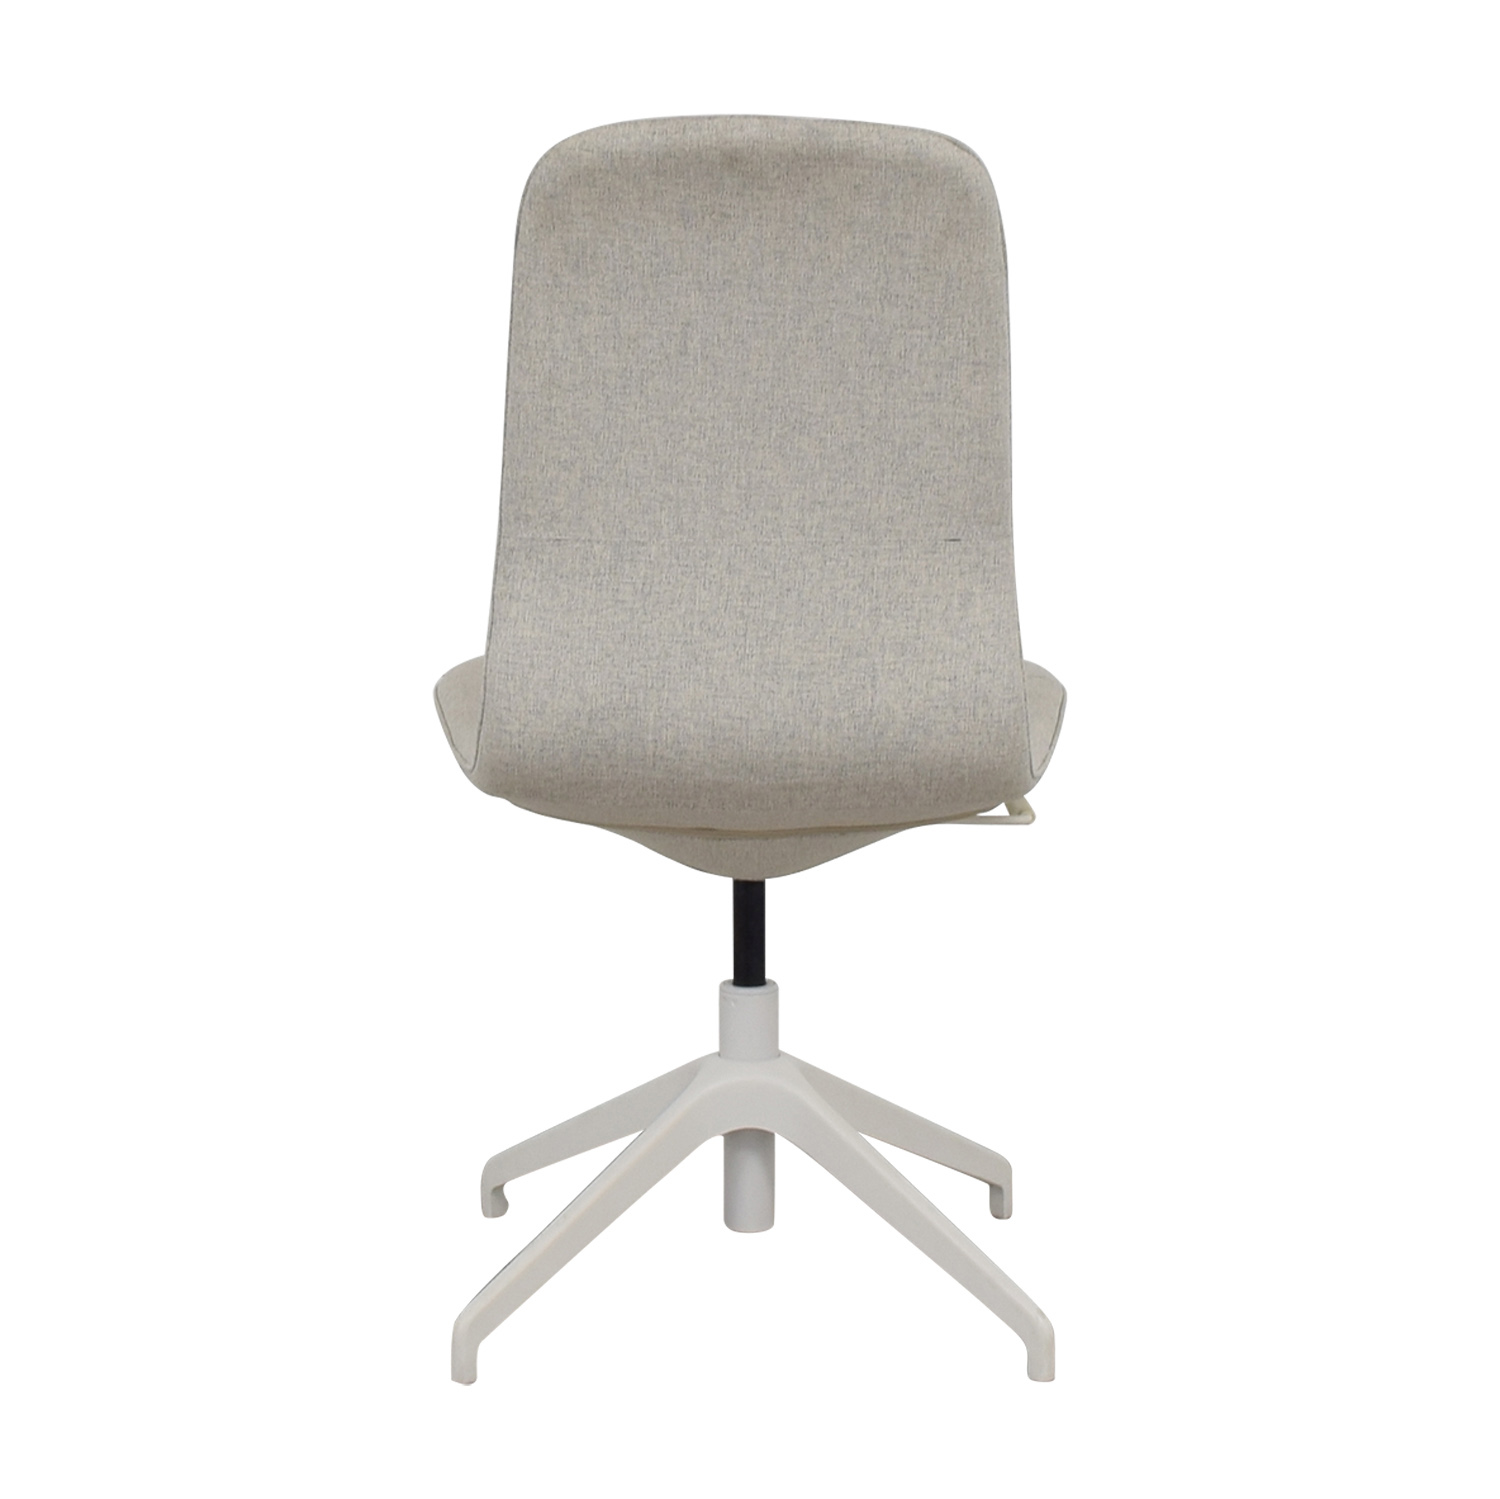 85 Off Ikea Ikea Langfjall Grey Swivel Chair Chairs